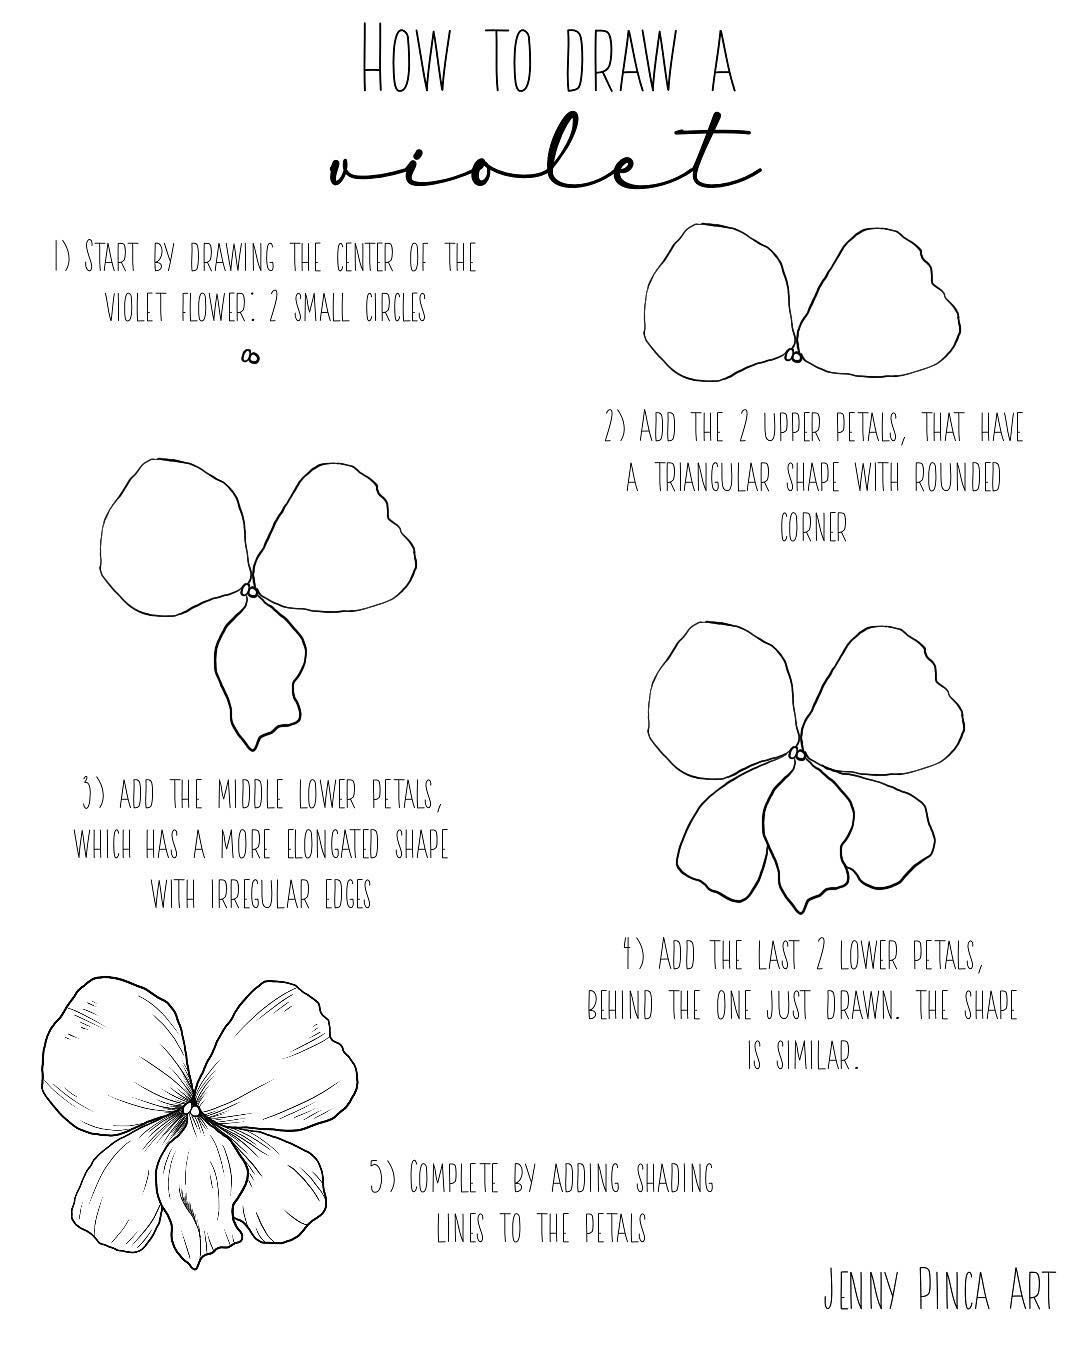 How To Draw A Violet Flower : violet, flower, Violet, Flower, #Tutorial, #howtodraw, #drawingtutorial, #drawingtutorials, #arttut…, Drawing, Tutorials,, Flower,